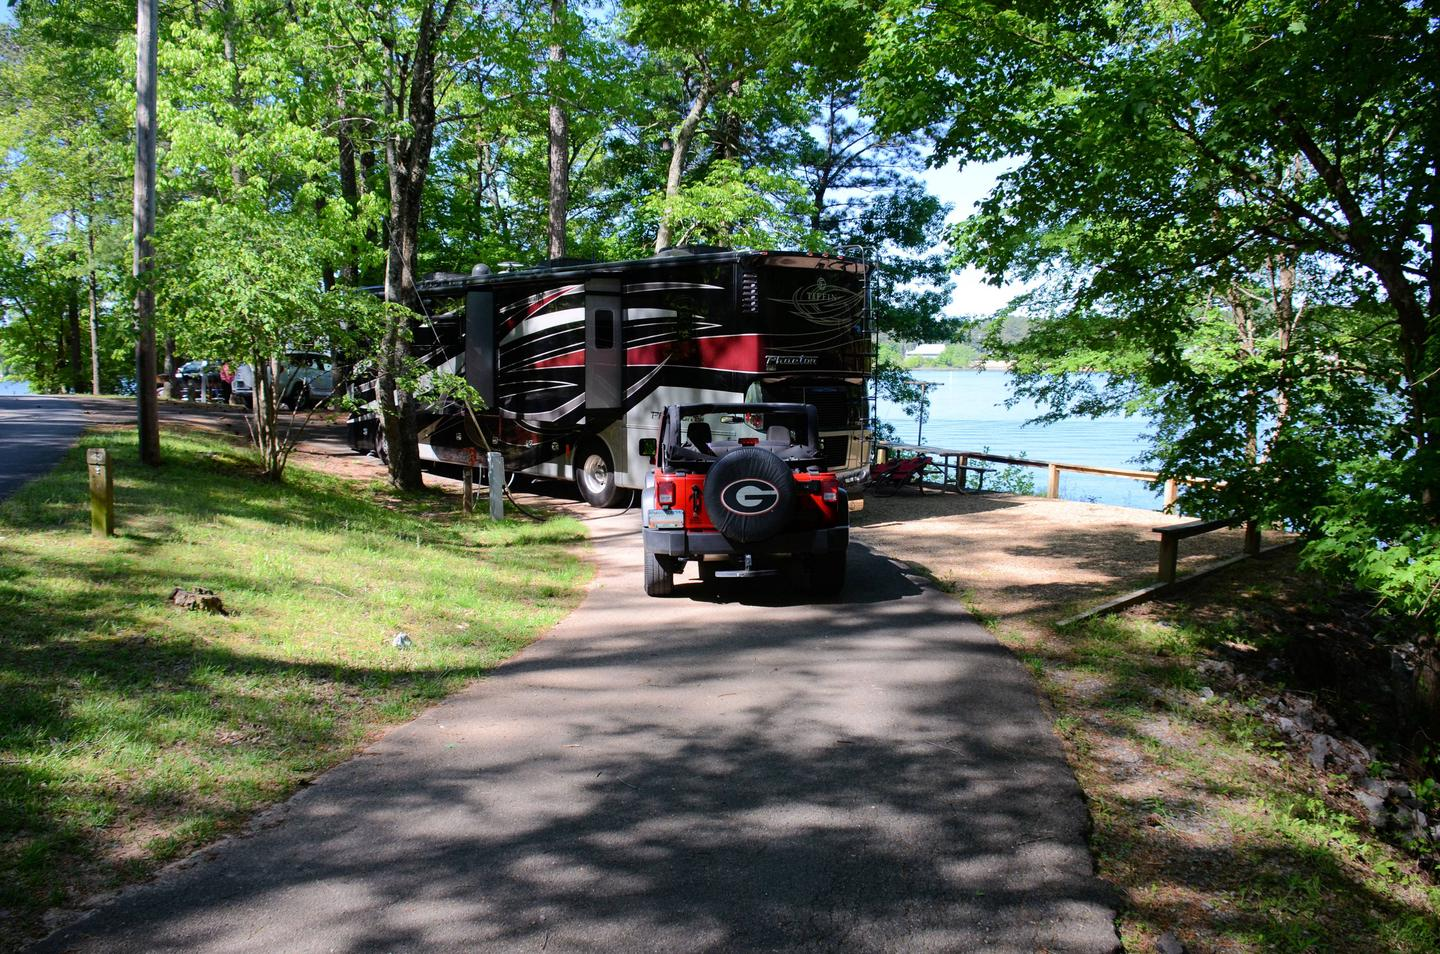 Pull-thru entrance, driveway slope, utiliteis-side clearance.McKinney Campground, campsite 43.